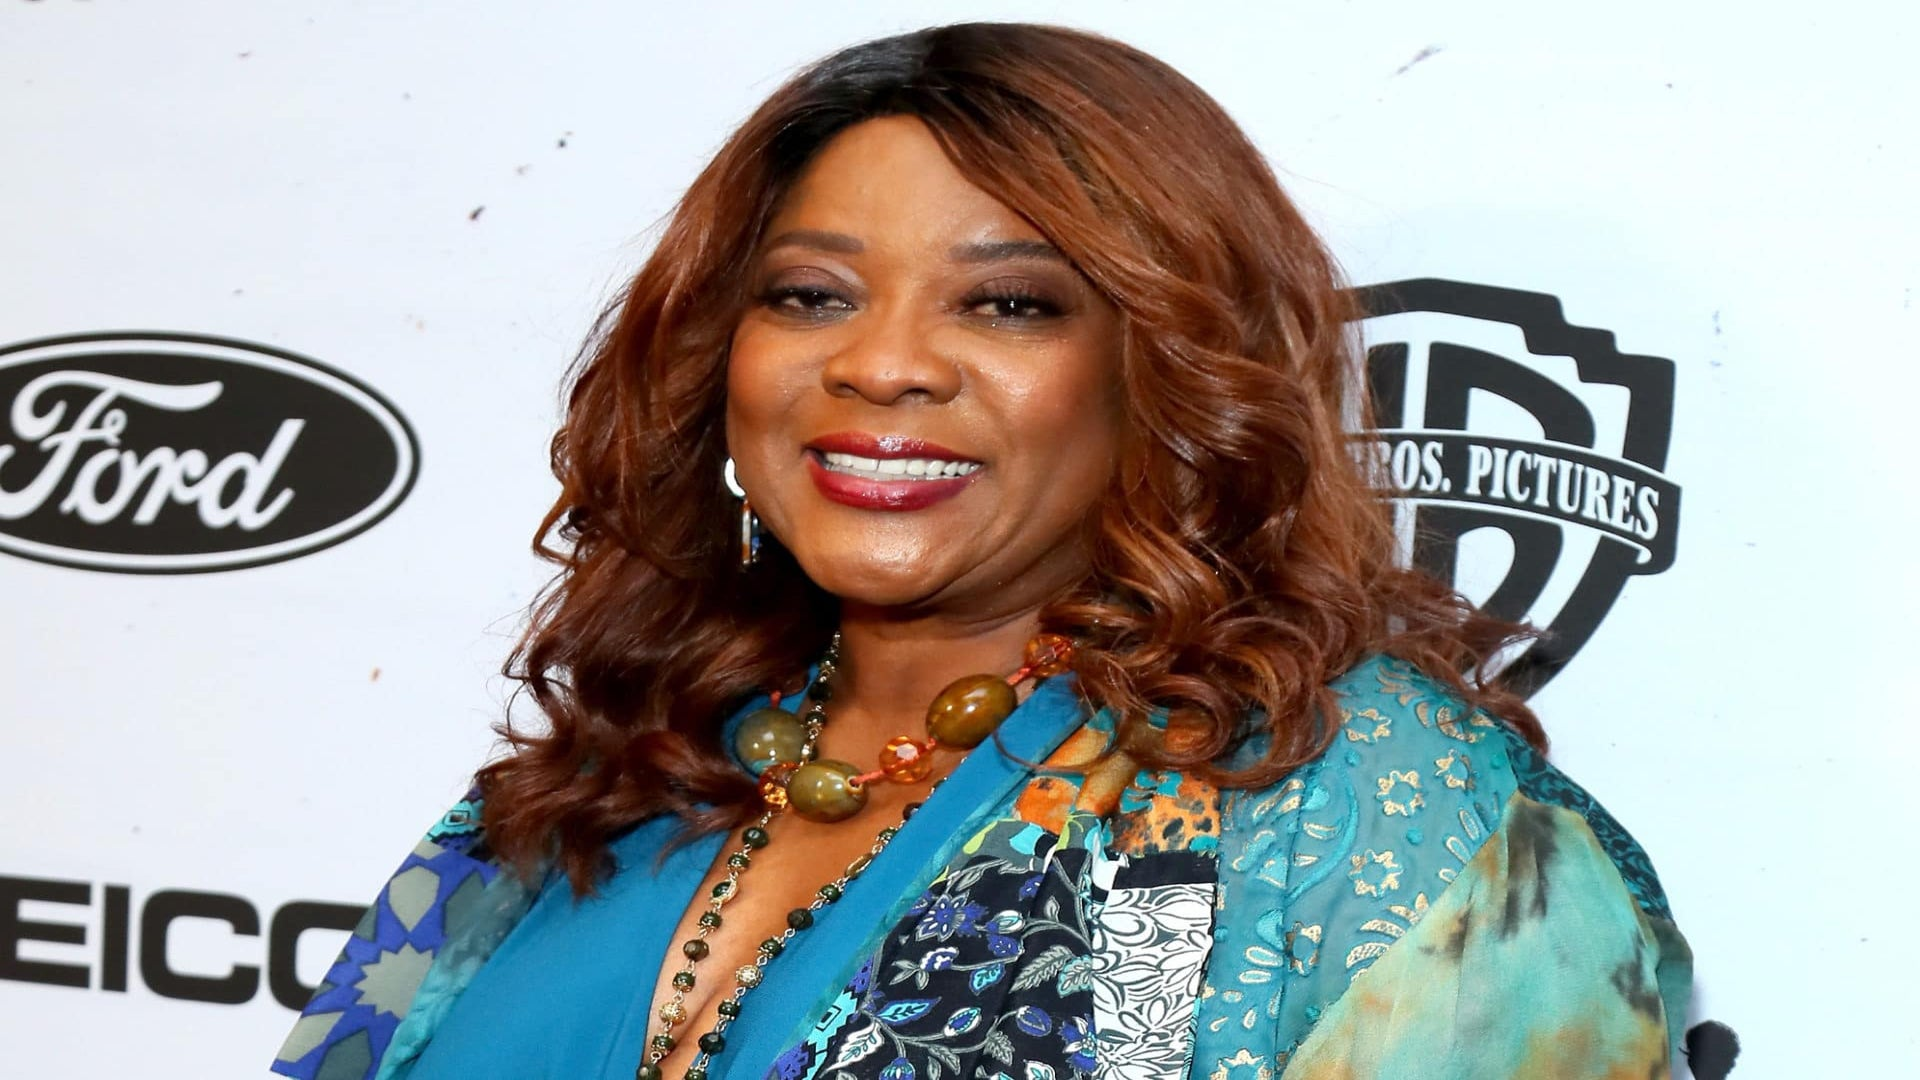 Loretta Devine Speaks Candidly About Working In Hollywood: 'It's Not An Easy Thing'